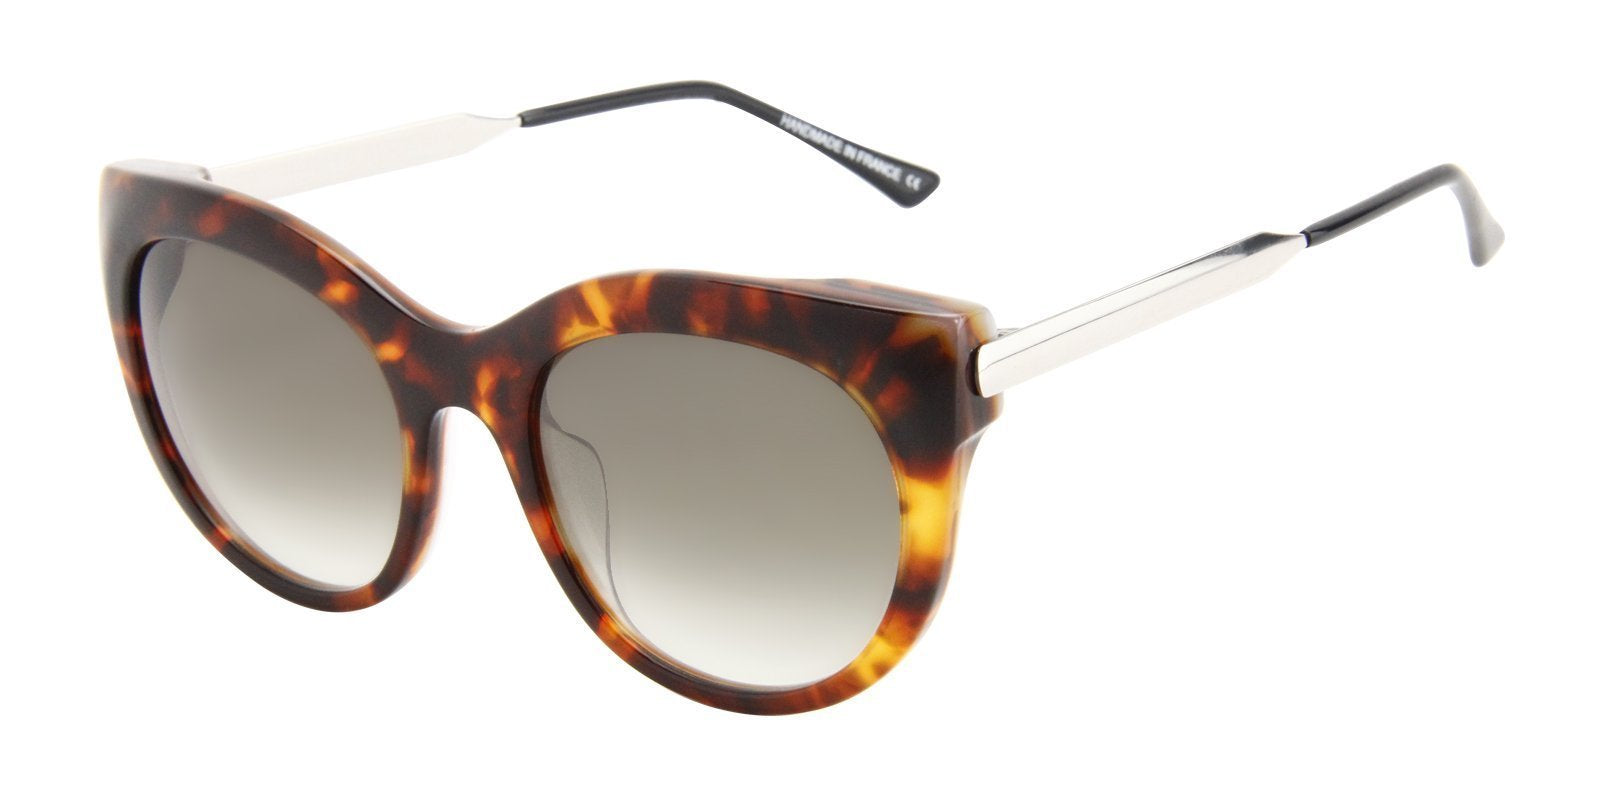 Thierry Lasry - Glitzy Tortoise Oval Women Sunglasses - 55mm-Sunglasses-Designer Eyes